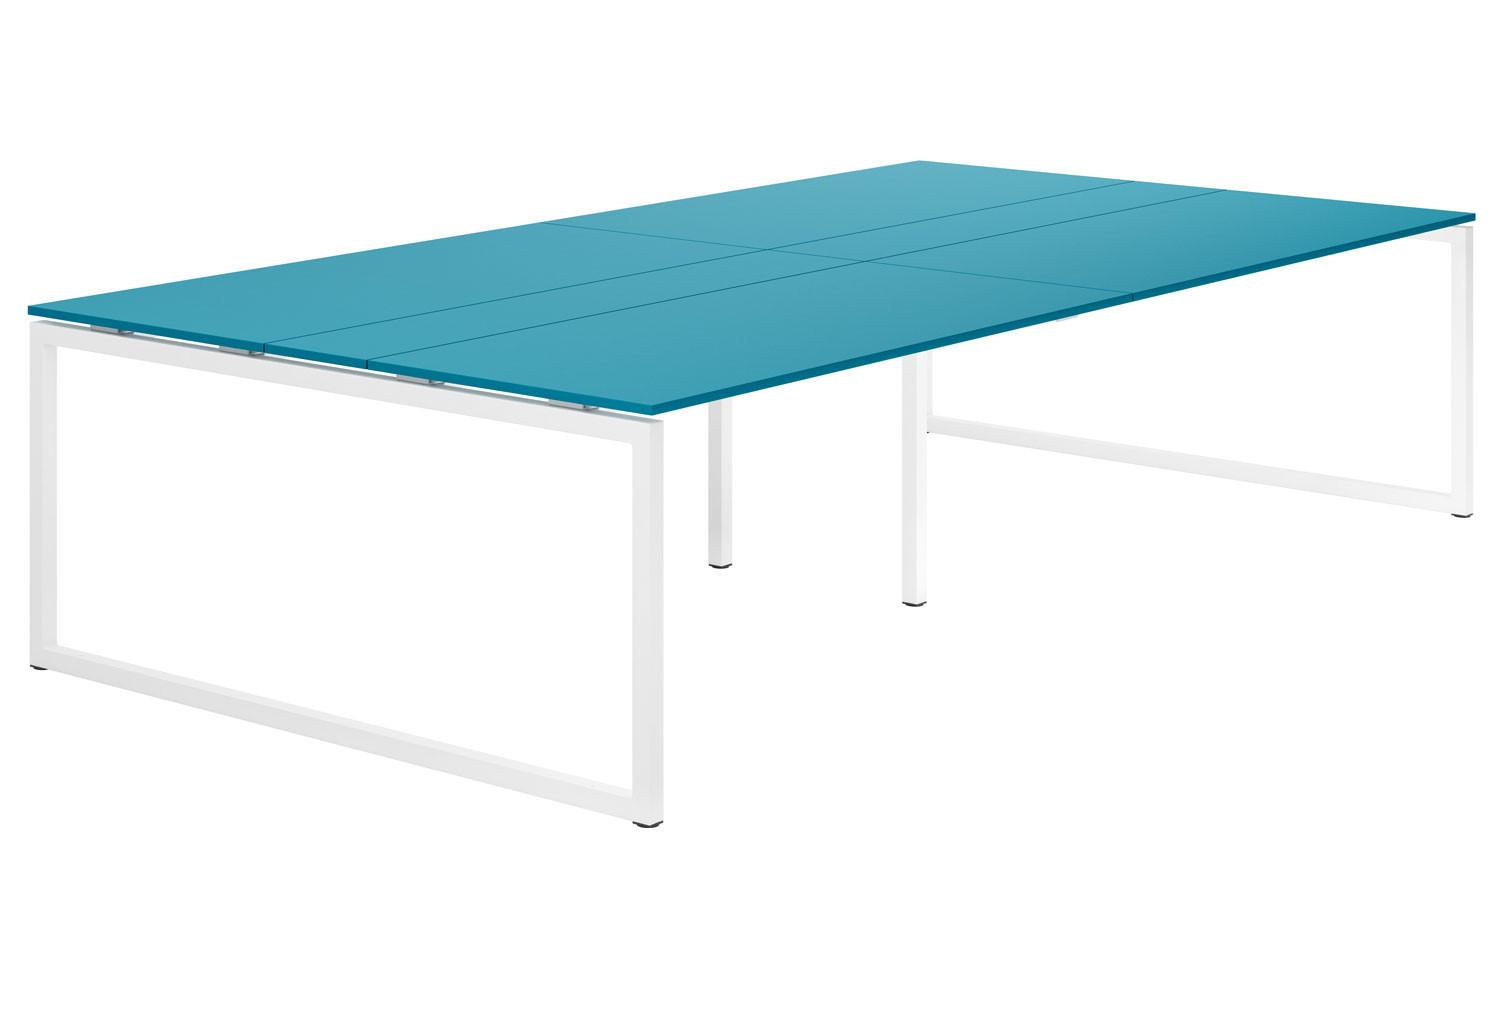 Campos Hooped Leg 10-12 Person Meeting Table (Light Blue)